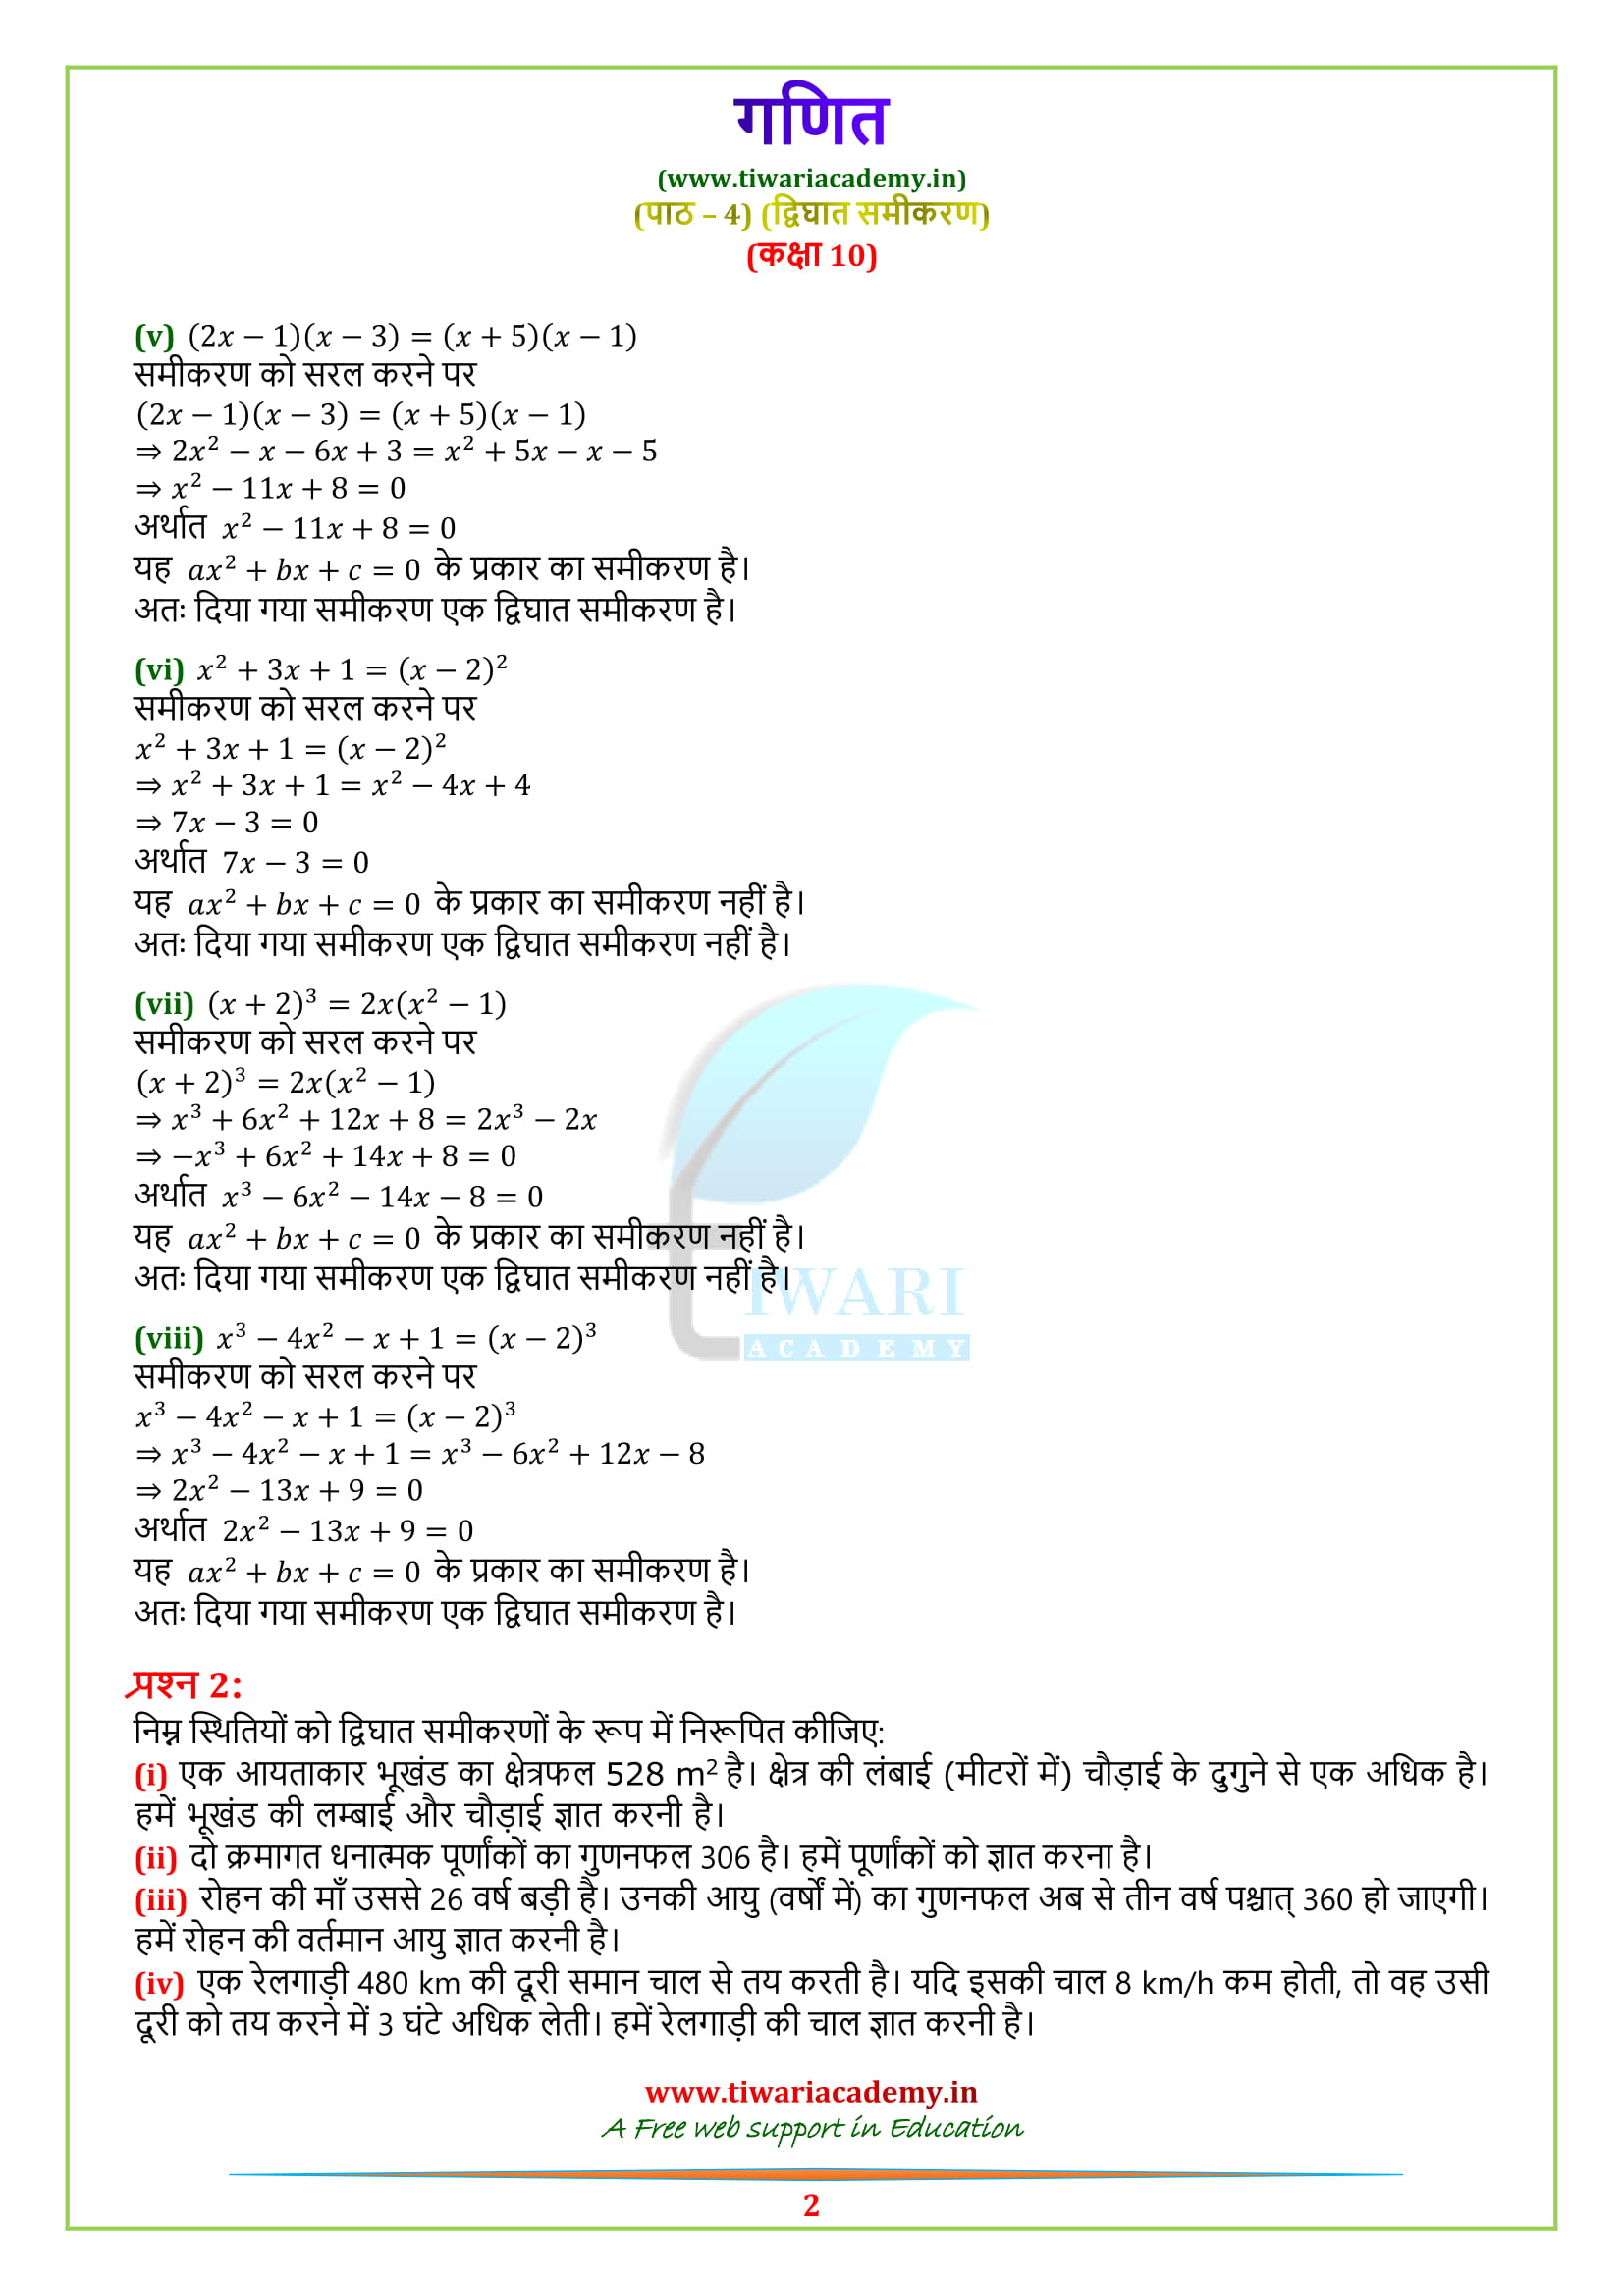 10 Maths Exercise 4.1 solutions in Hindi question 1, 2, 3.